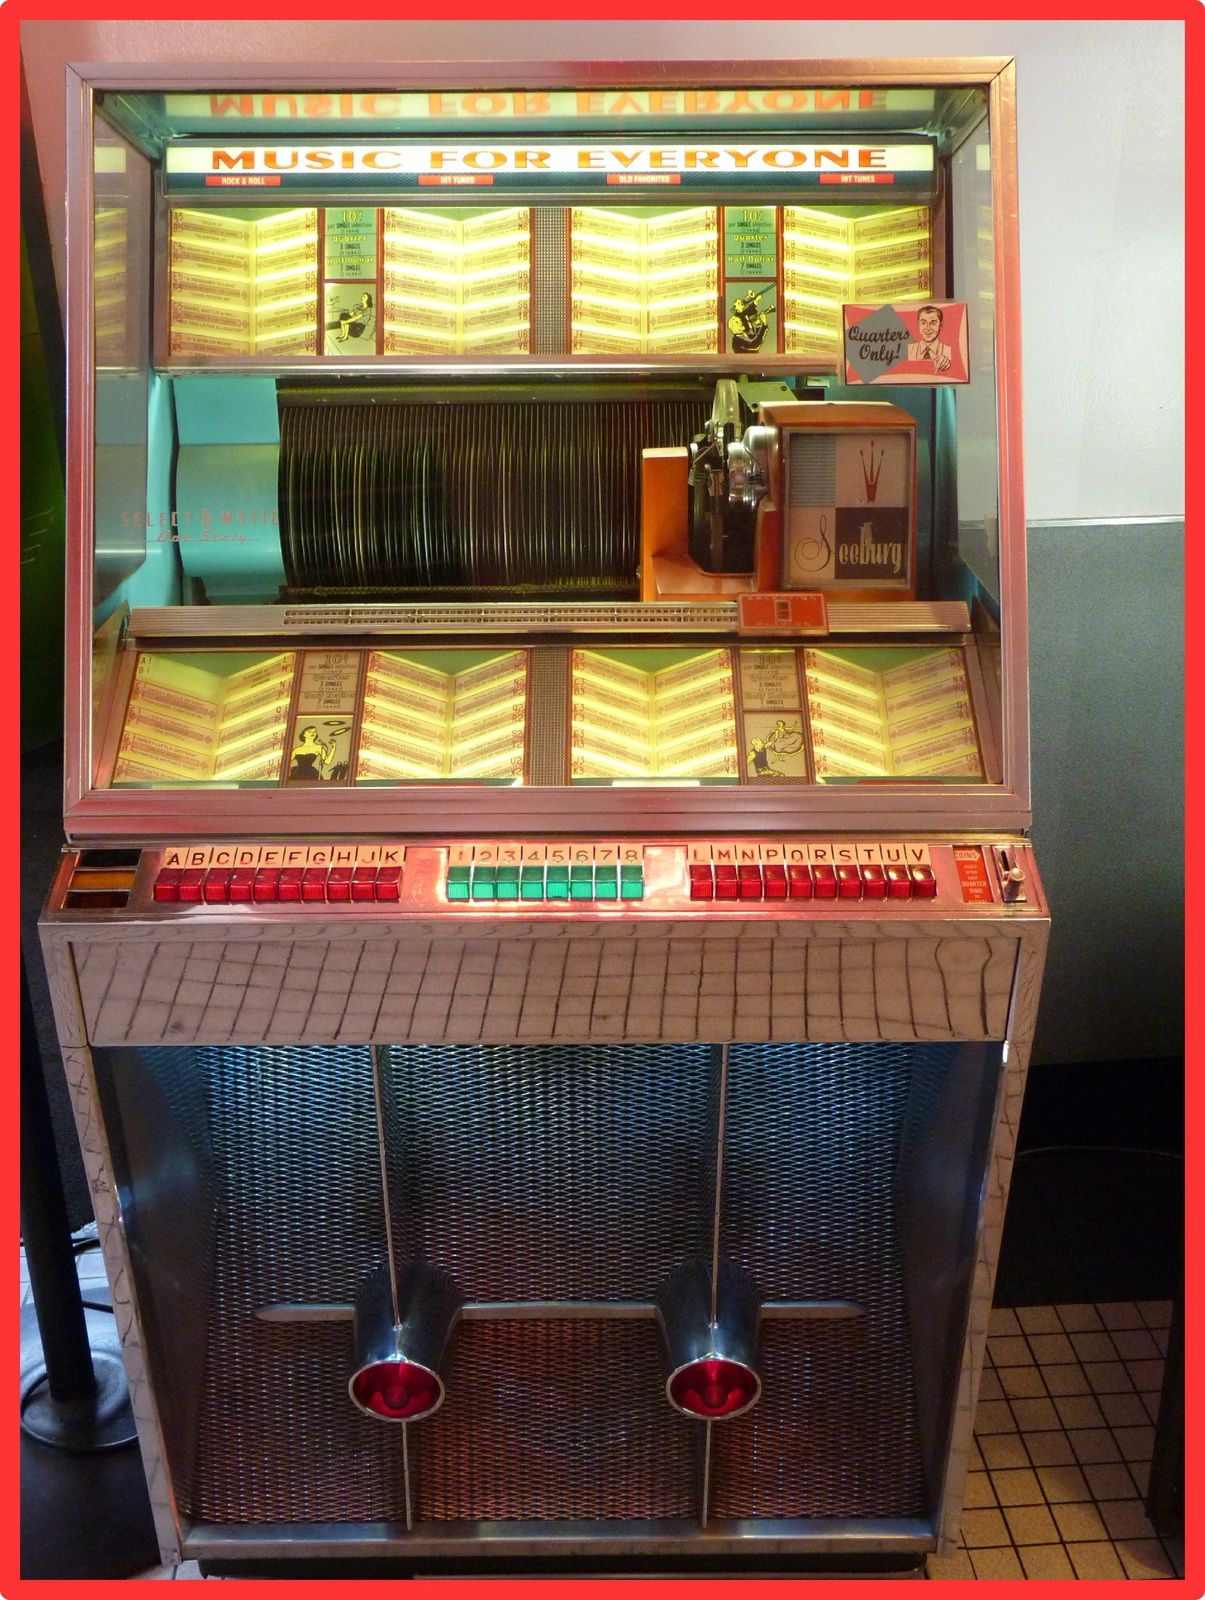 Juke box du 66 Diner Albuquerque NM